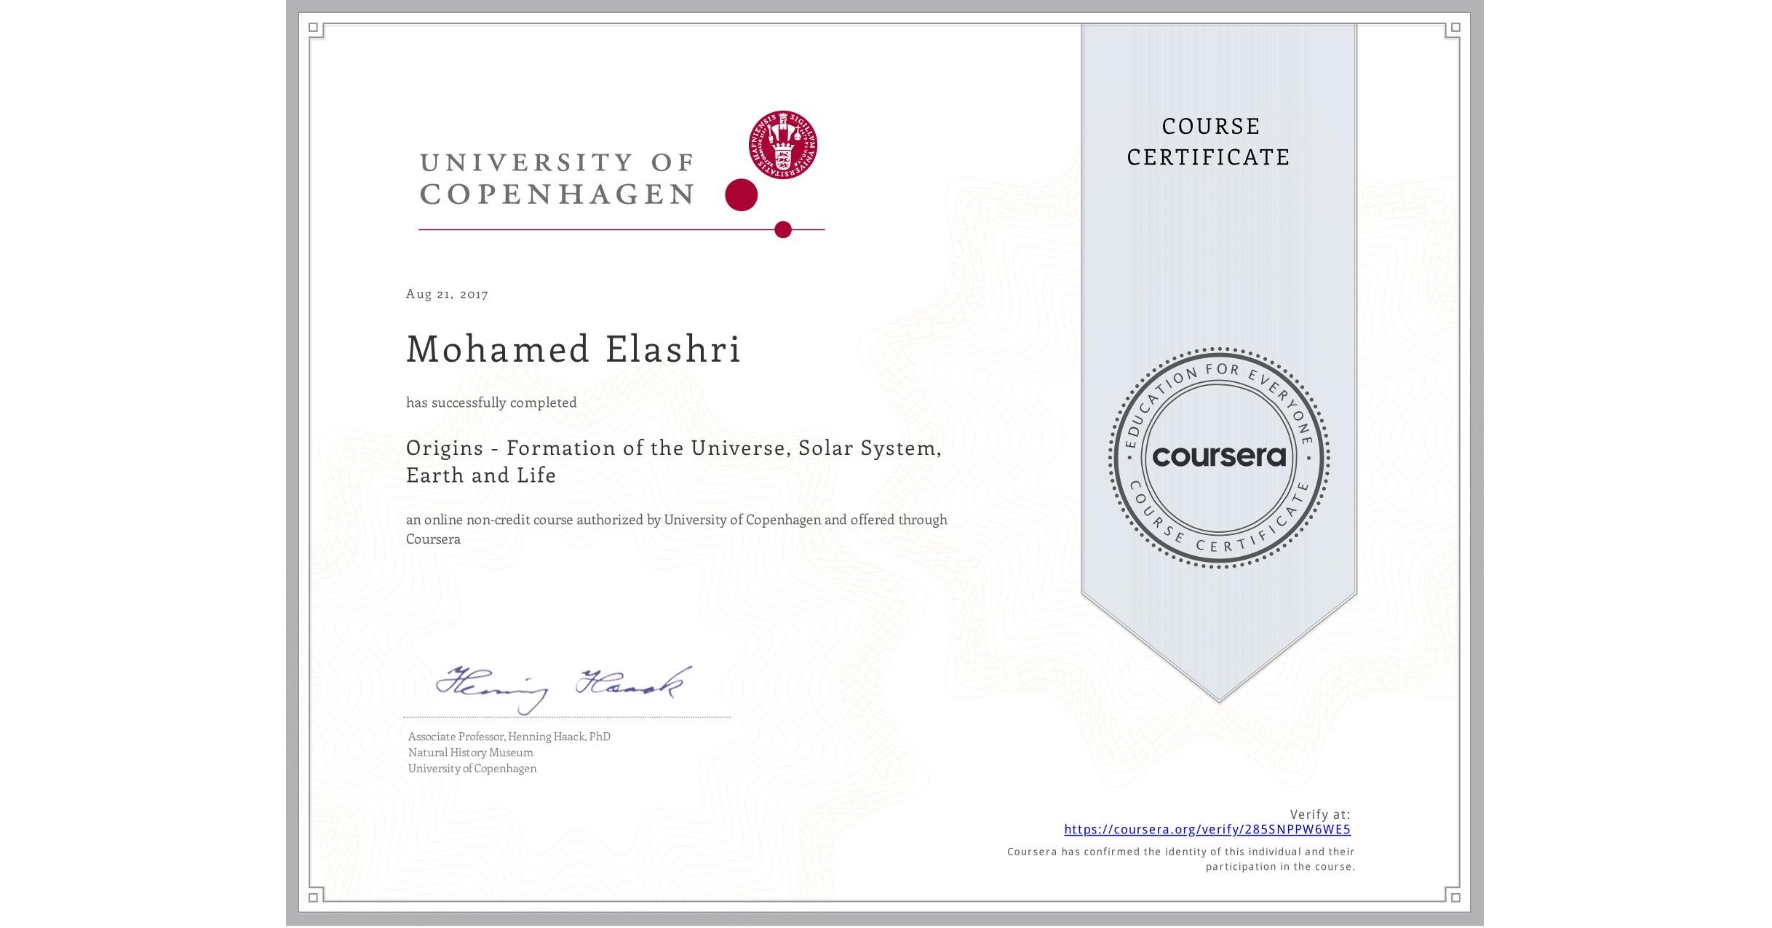 View certificate for Mohamed Elashri, Origins - Formation of the Universe, Solar System, Earth and Life, an online non-credit course authorized by University of Copenhagen and offered through Coursera